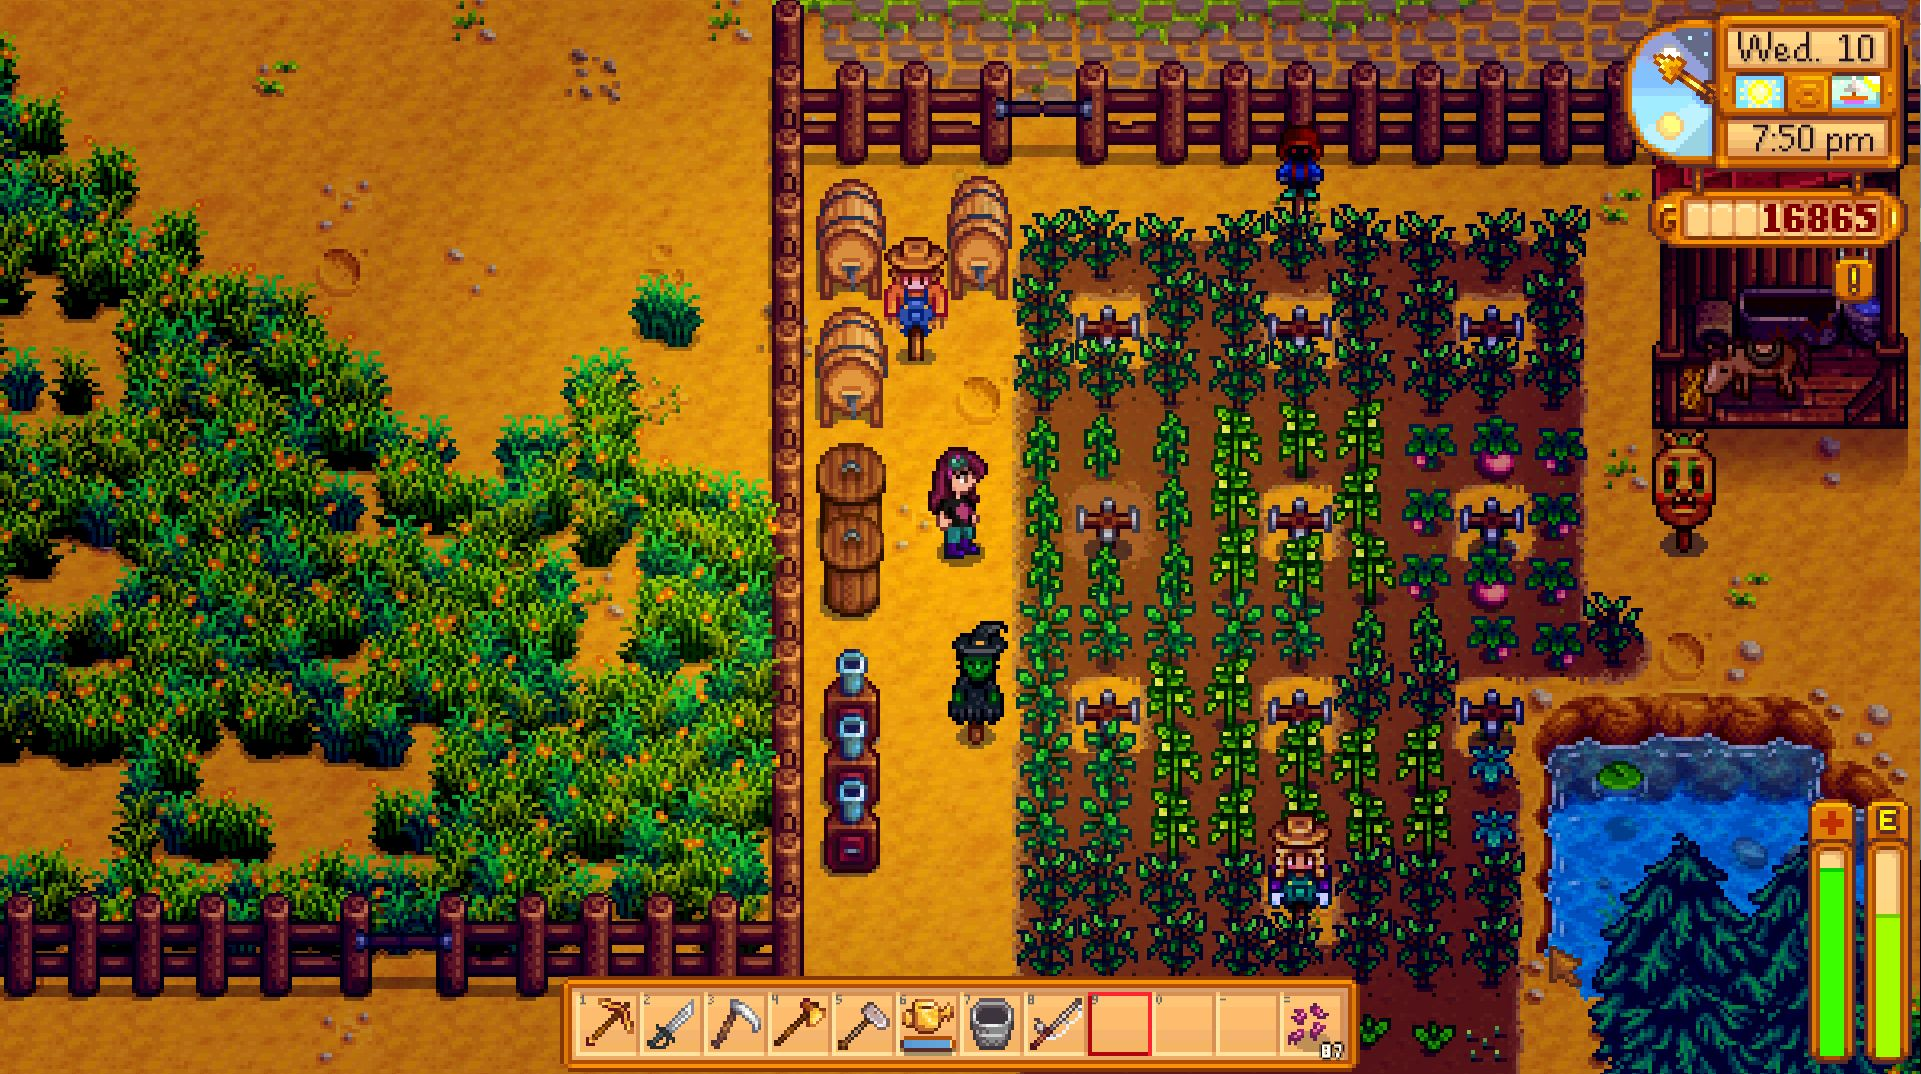 how to get eggs in stardew valley